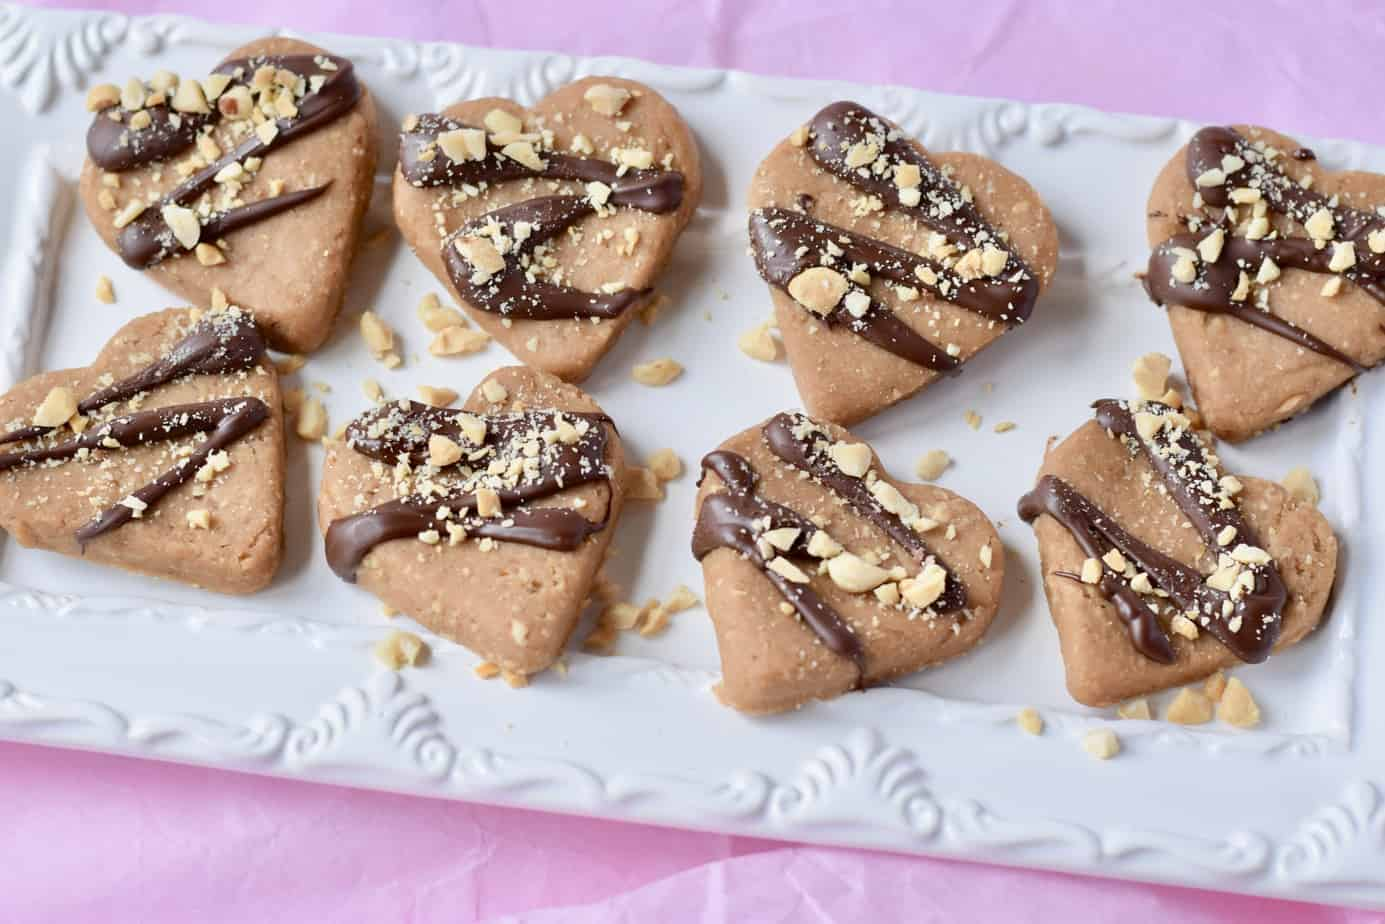 Plate of vegan bean and peanut butter no-bake treats